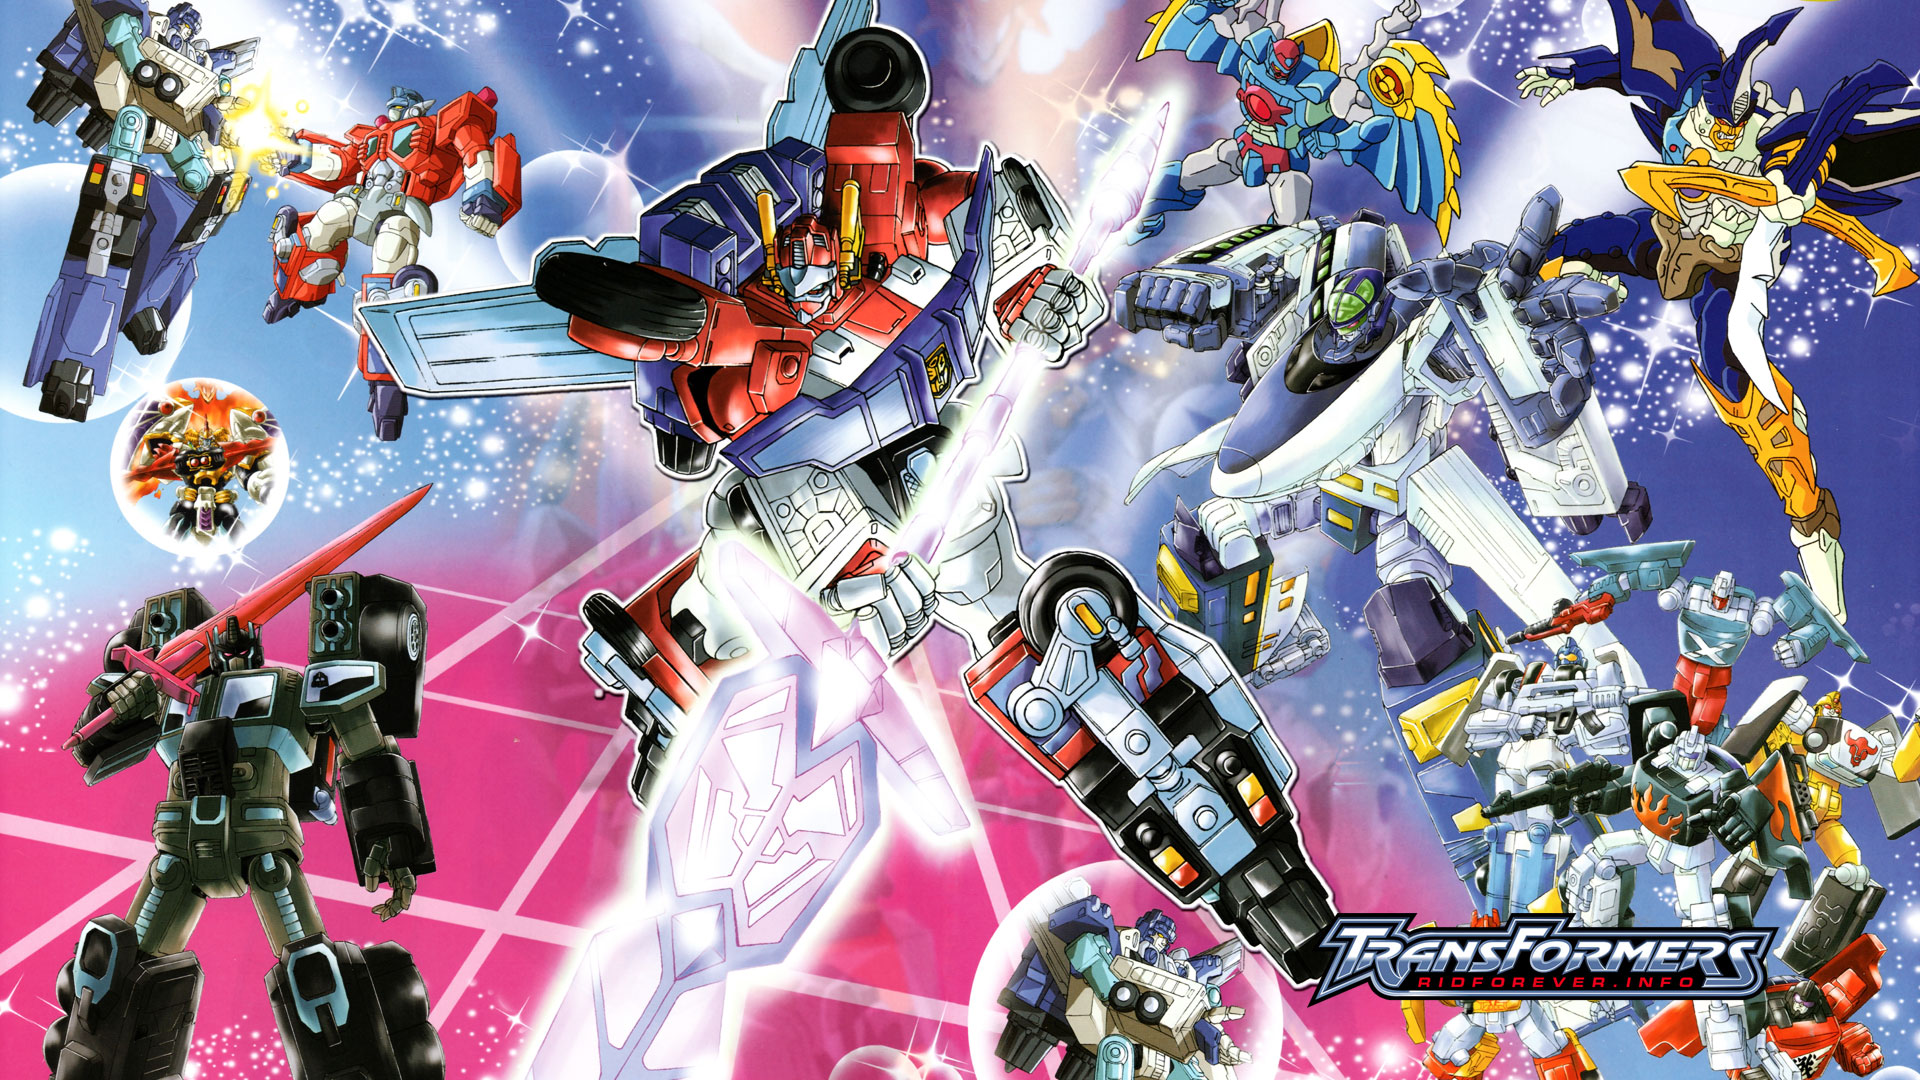 Robots In Disguise Quick Facts - RIDForever